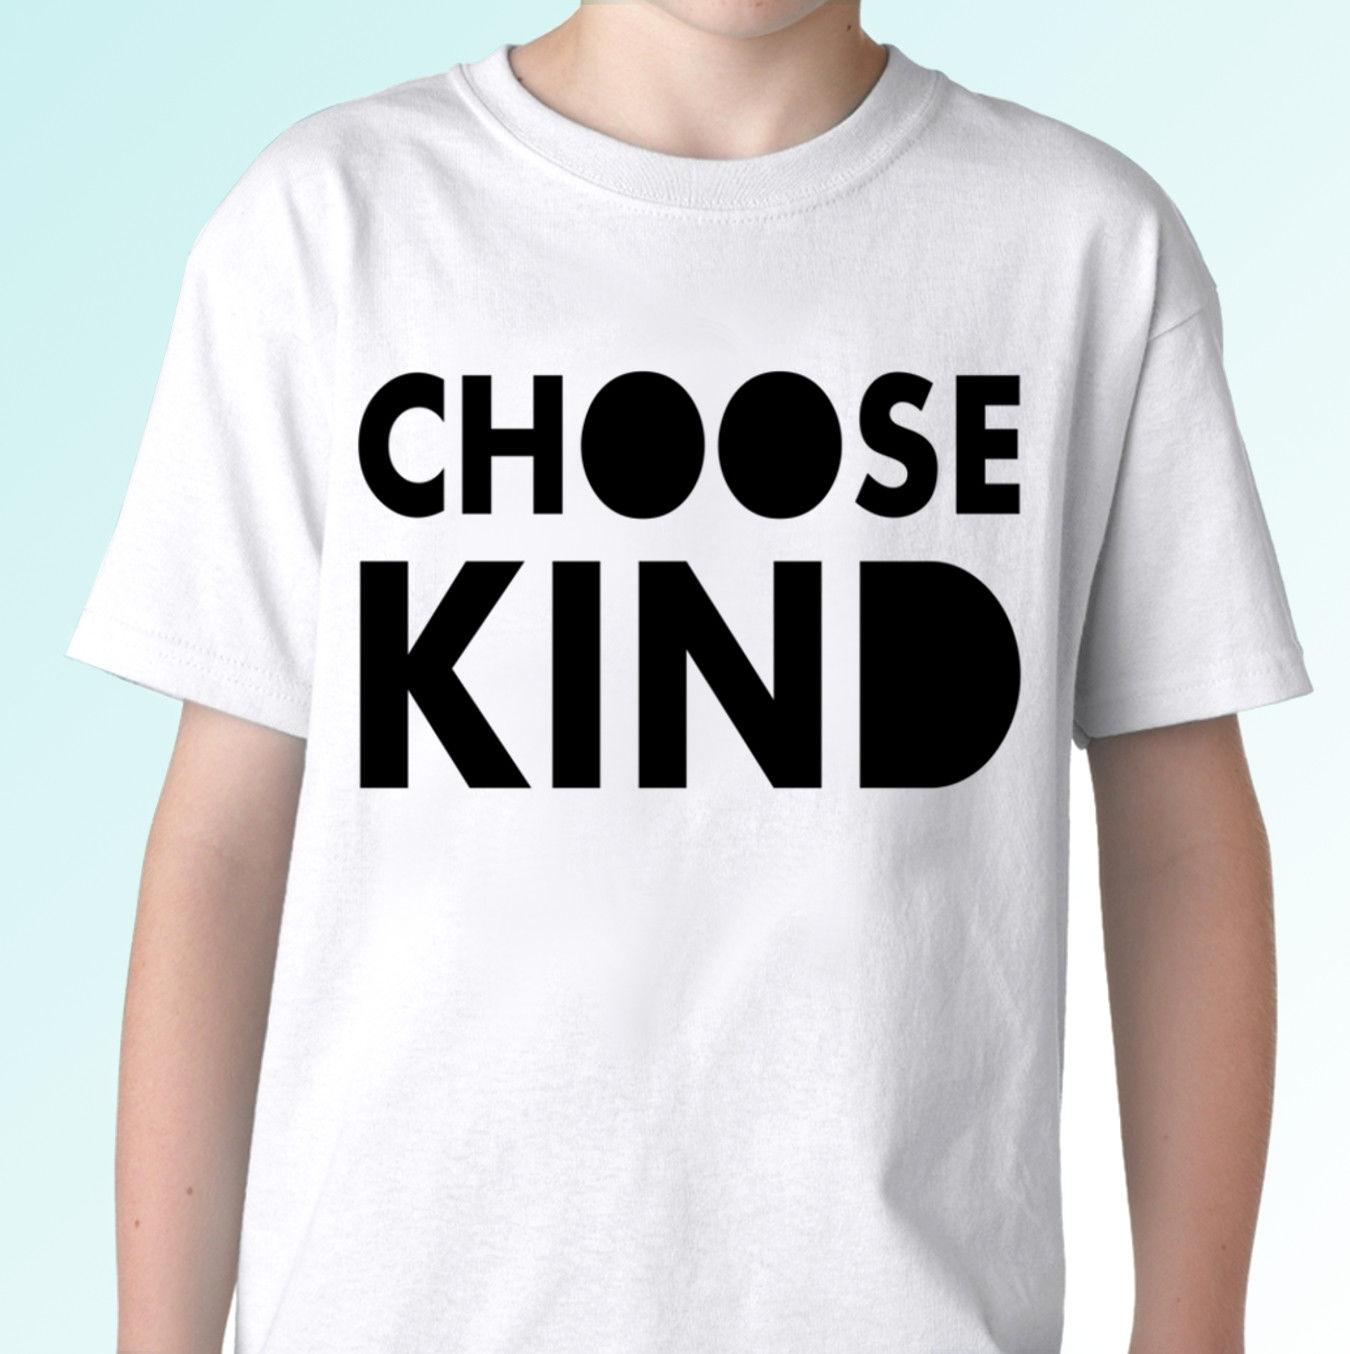 b4e7e82d7 Choose Kind White T Shirt Love Top Positive Quote For Mens Womens Kids & Baby  RETRO VINTAGE Classic T Shirt Designer White T Shirt Printed T Shirts Funny  ...